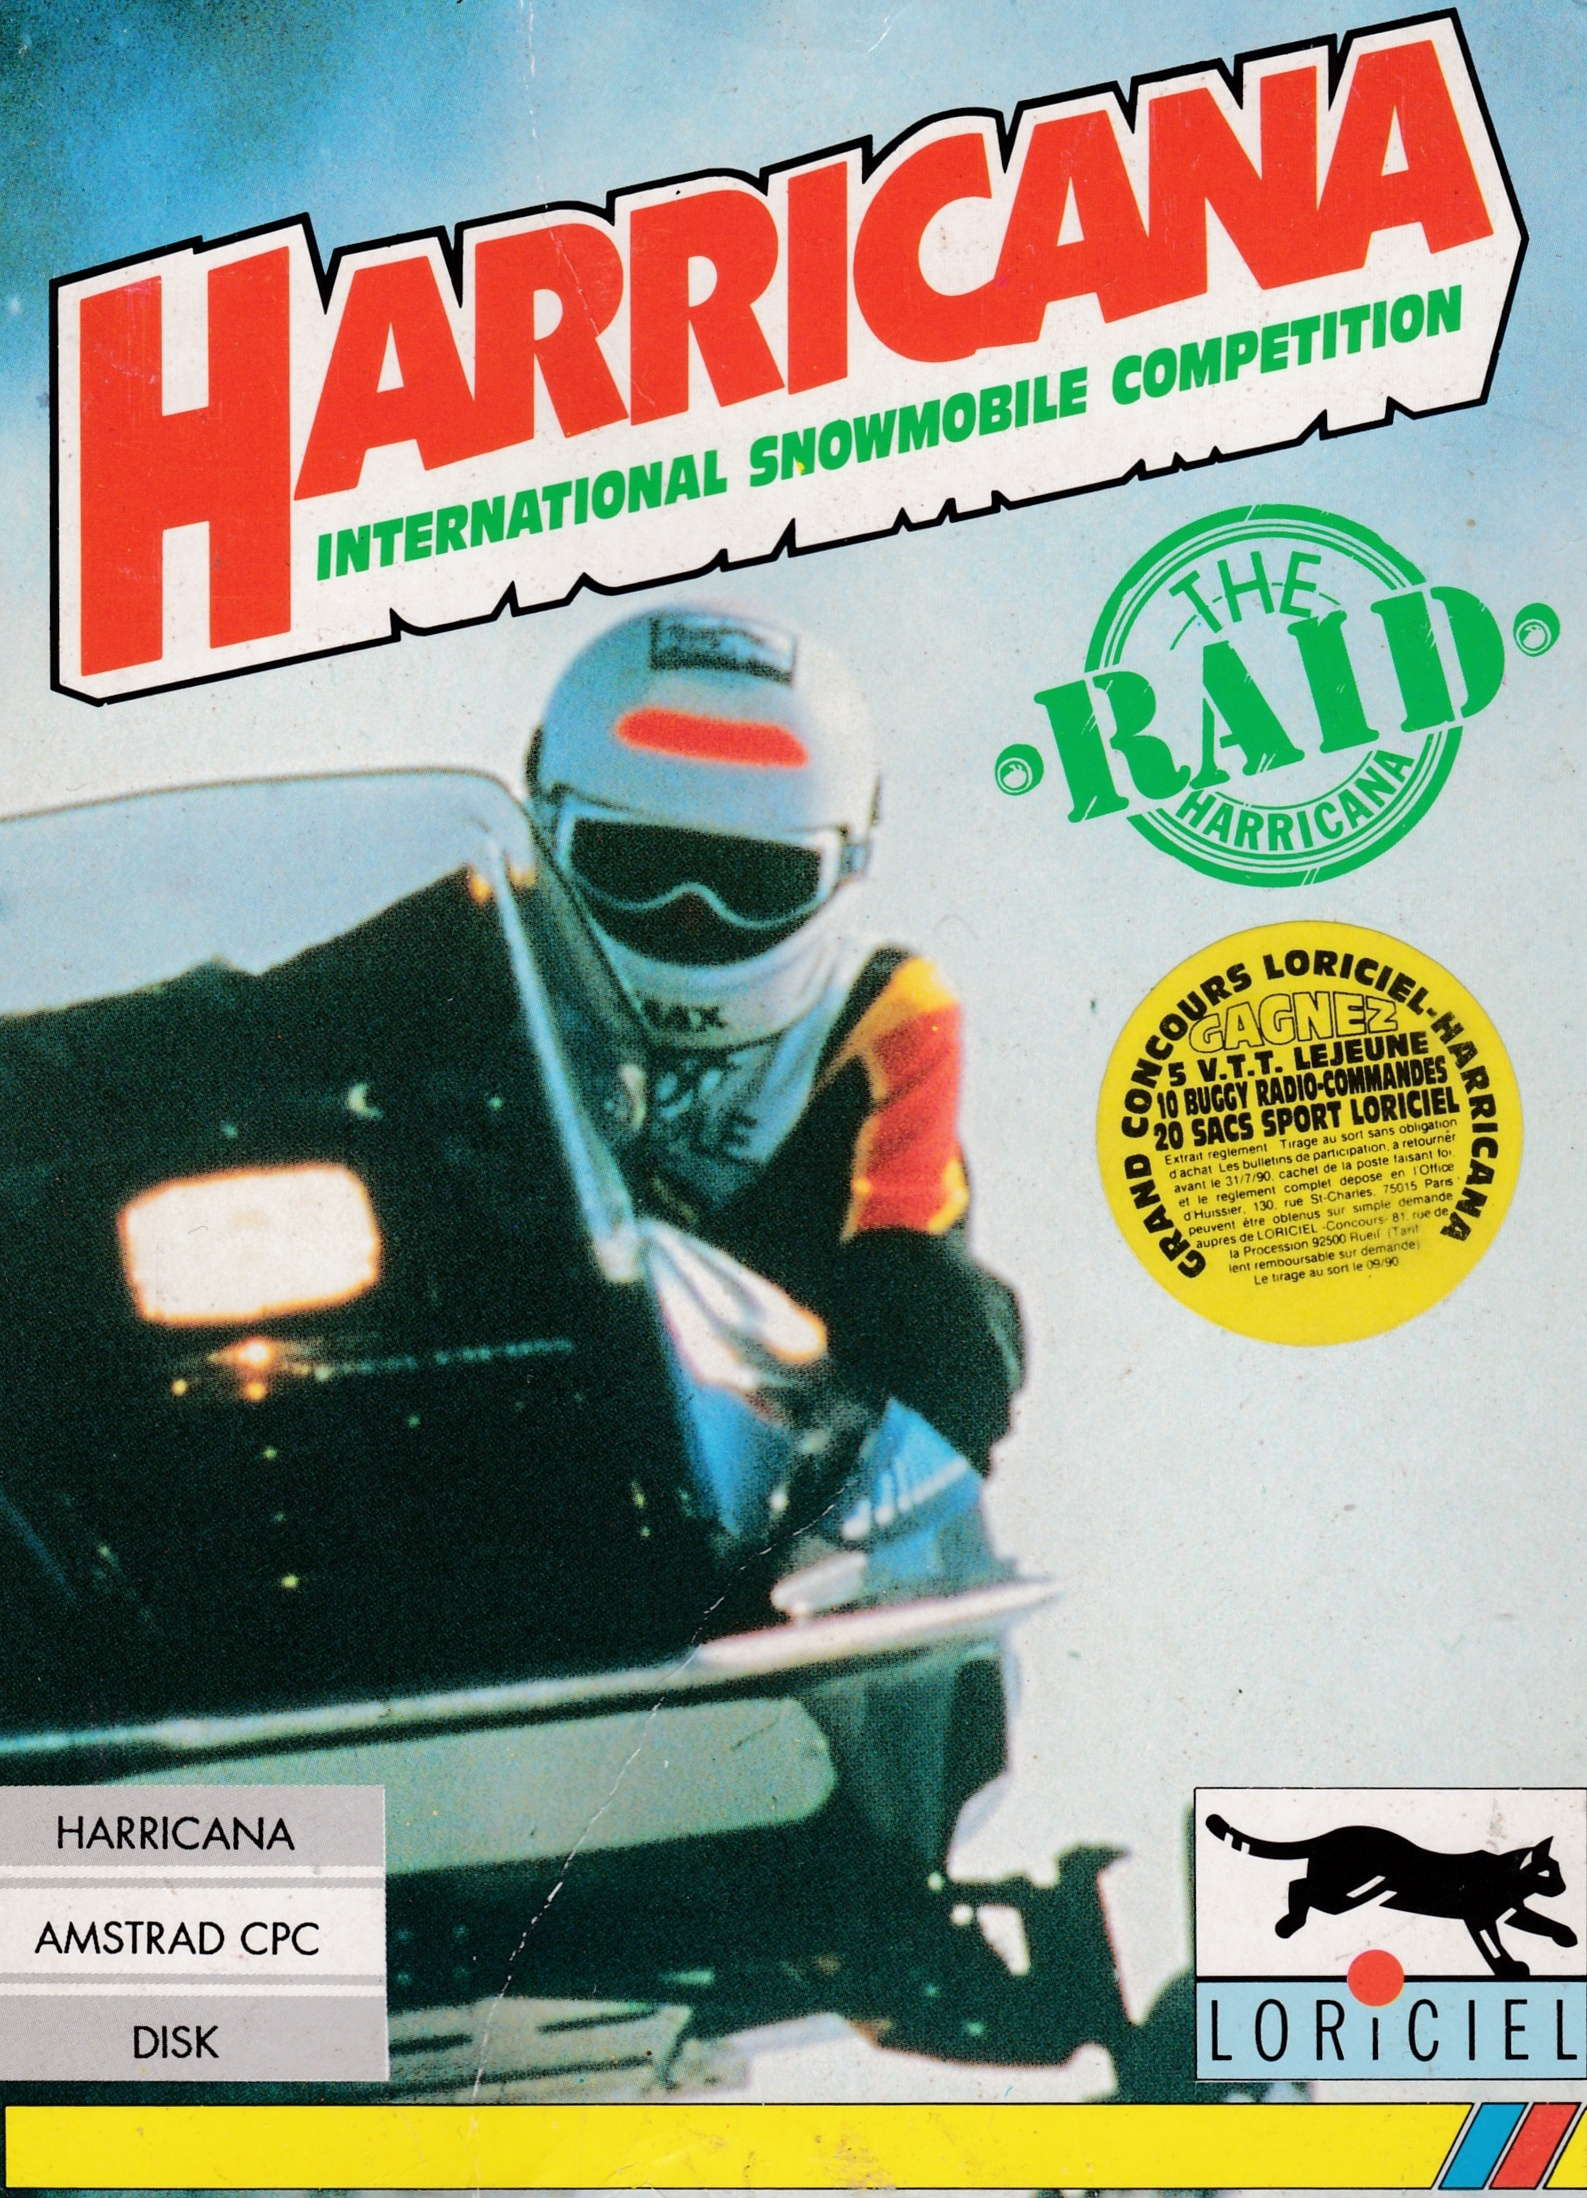 cover of the Amstrad CPC game Harricana  by GameBase CPC